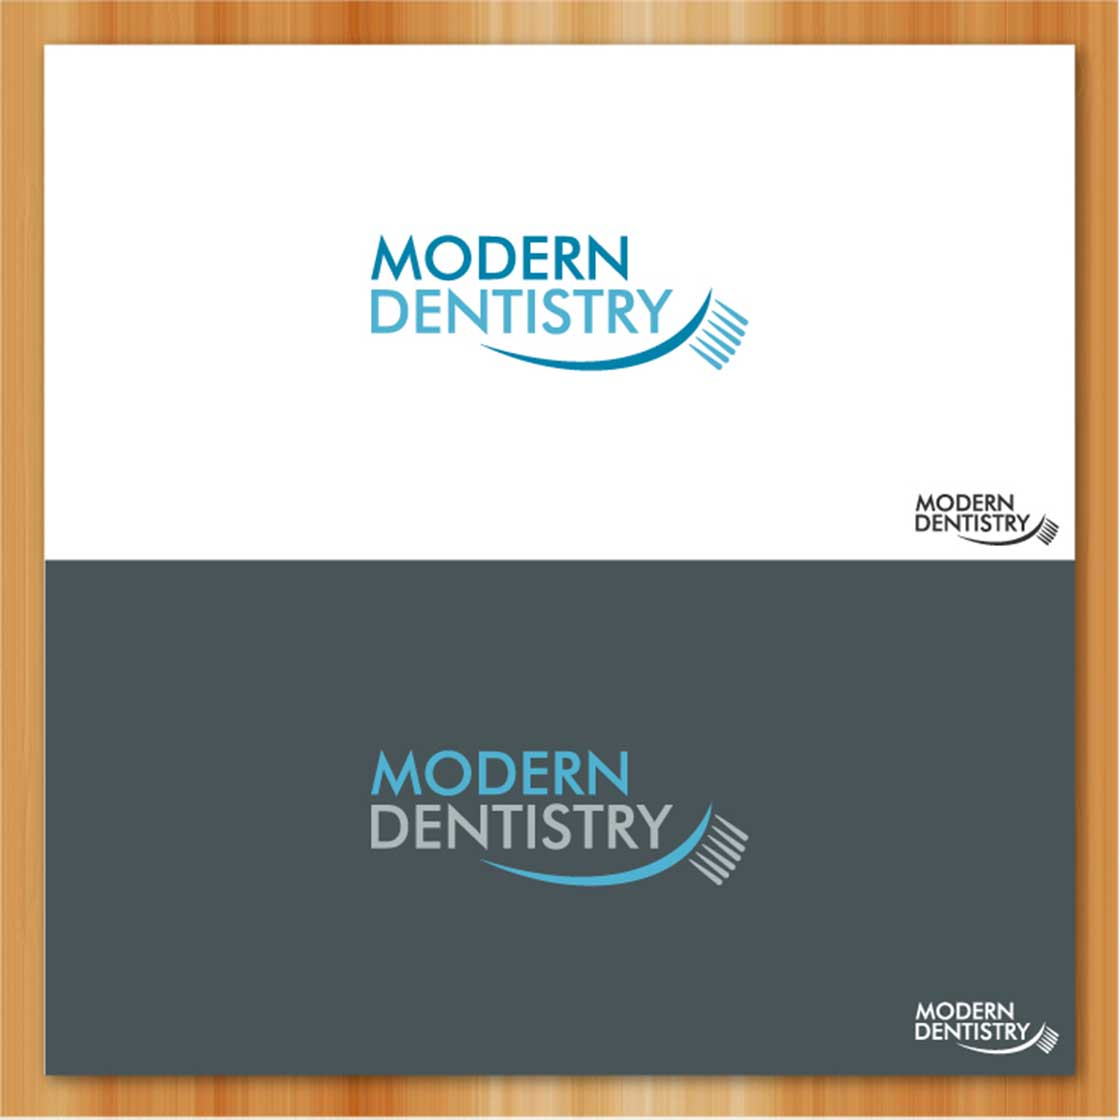 crowdspring dental logo design by DesignsDynamic